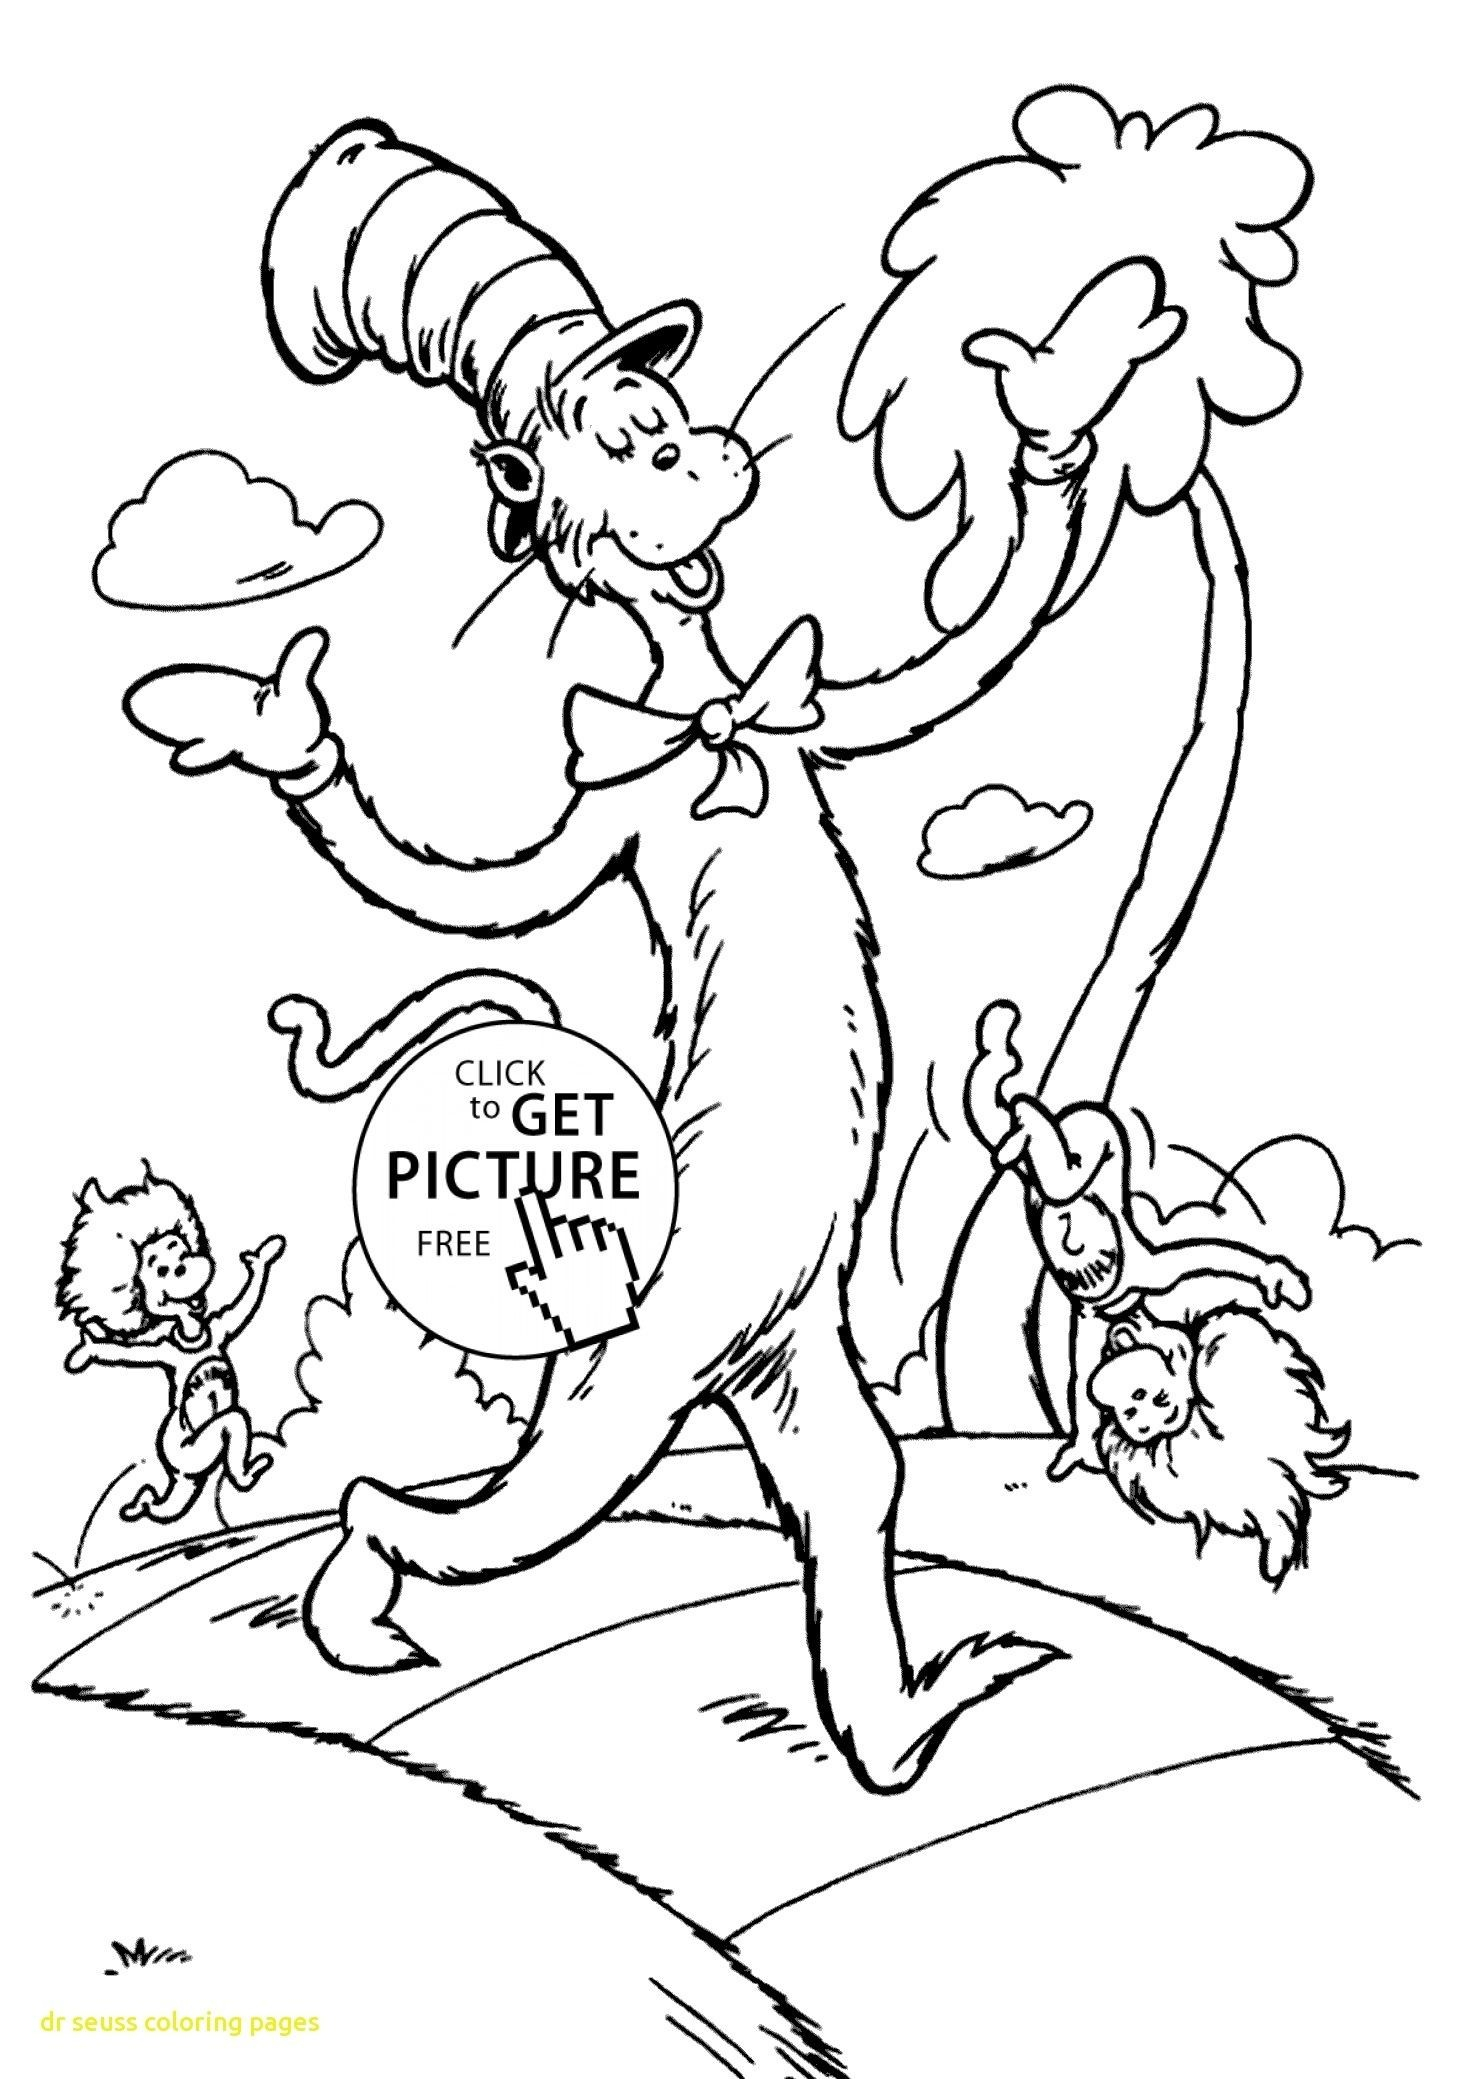 Dr Seuss Free Coloring Pages New Astonishing Dr Seuss Coloring Pour - Free Printable Dr Seuss Coloring Pages